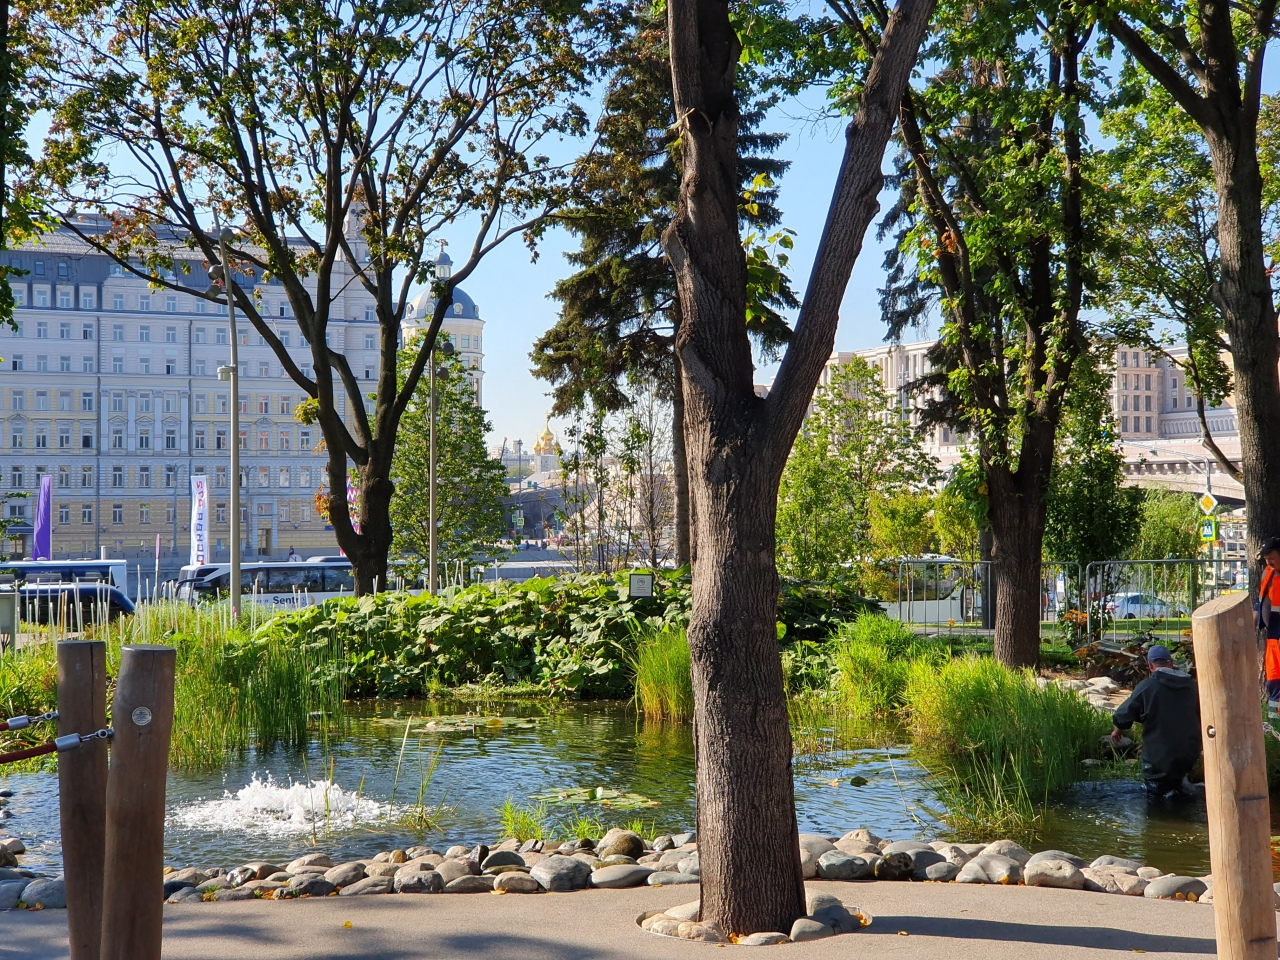 Public Health Reflections: Parks and Green Space